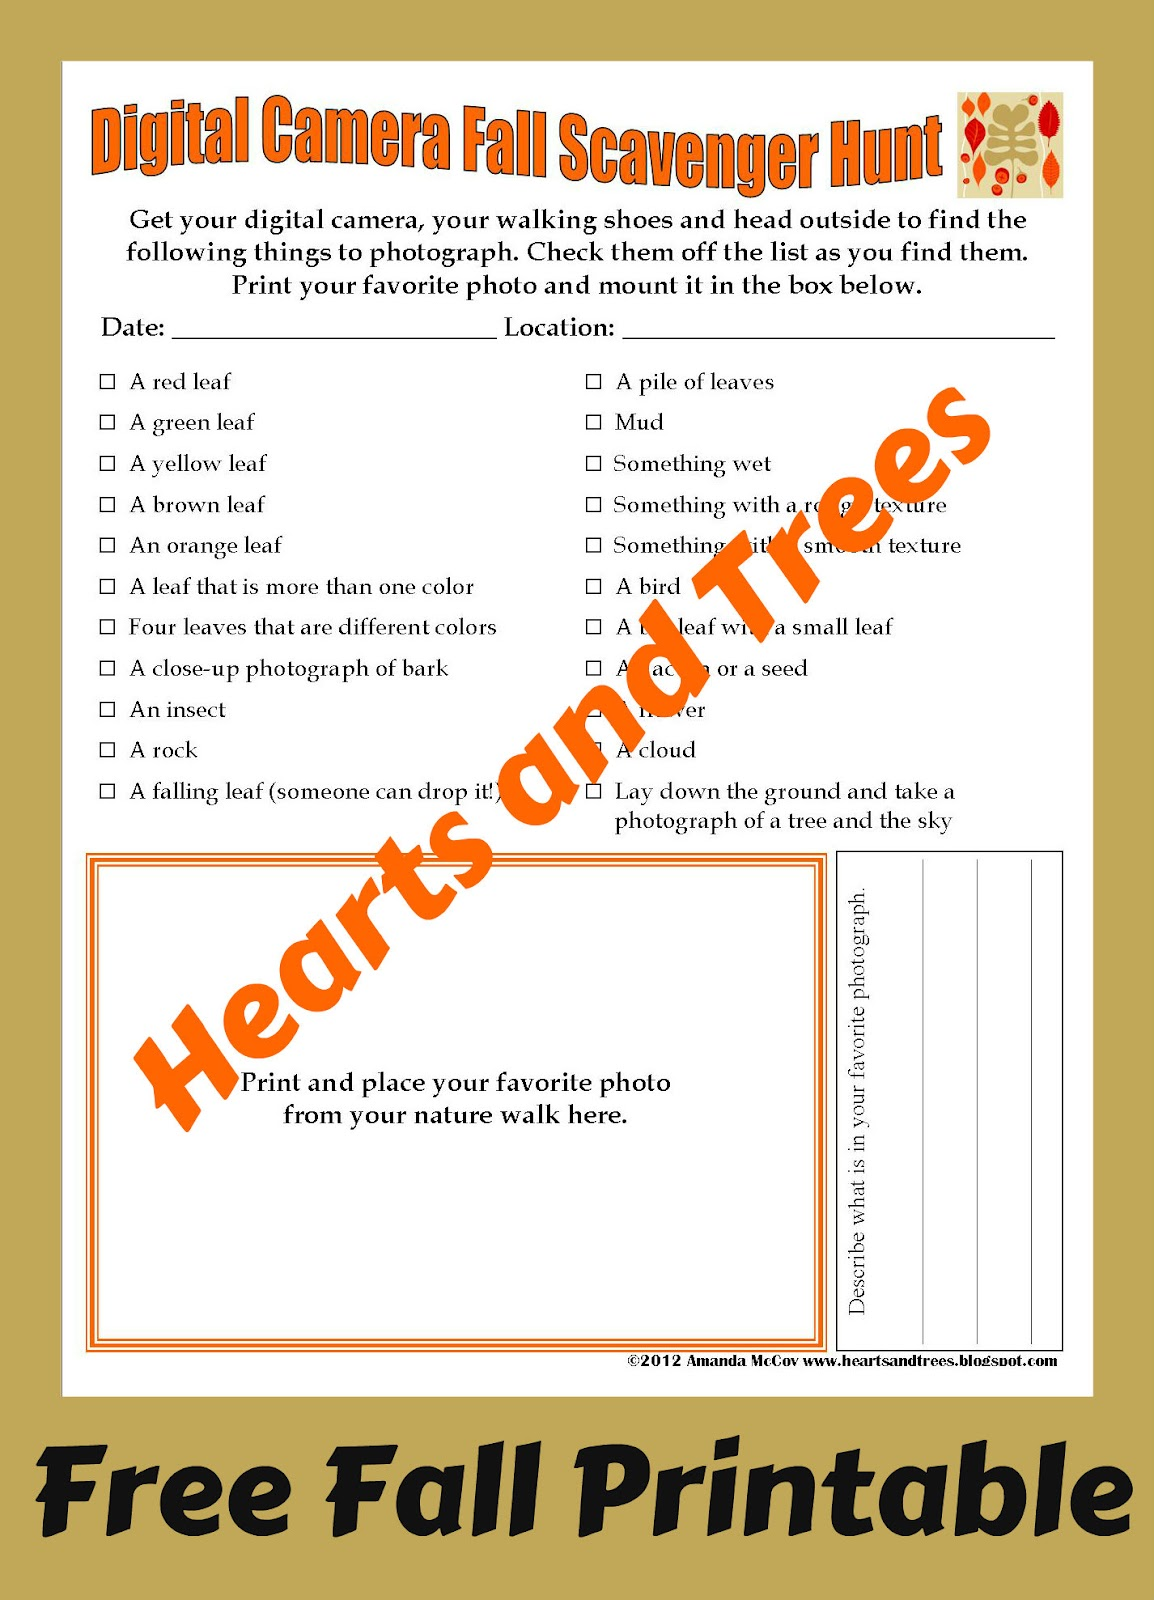 photo relating to Fall Scavenger Hunt Printable called Hearts and Trees: Electronic Digital camera Scavenger Hunt Absolutely free Printable